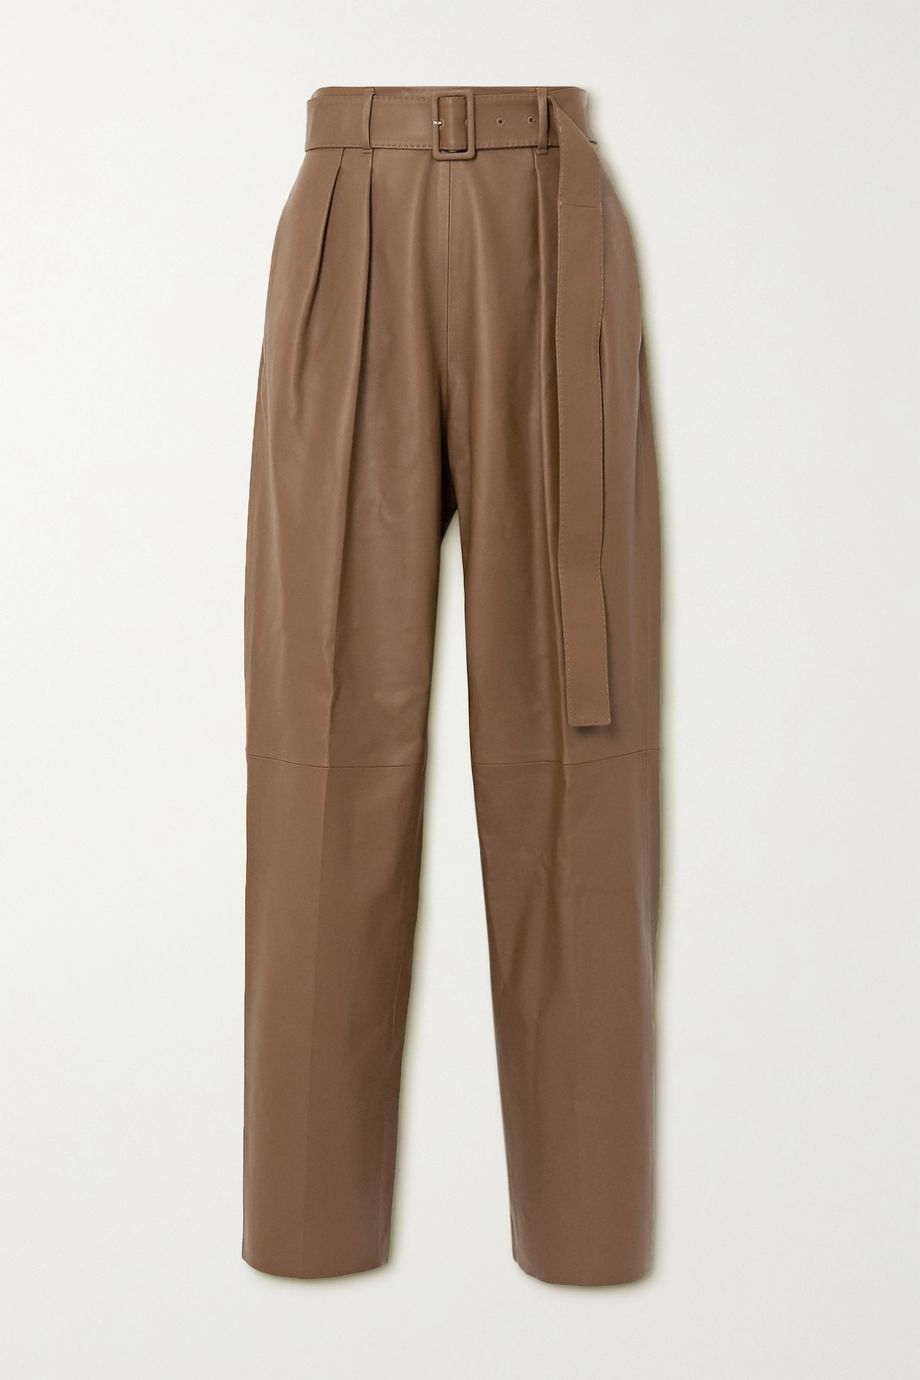 Agnona Belted leather tapered pants